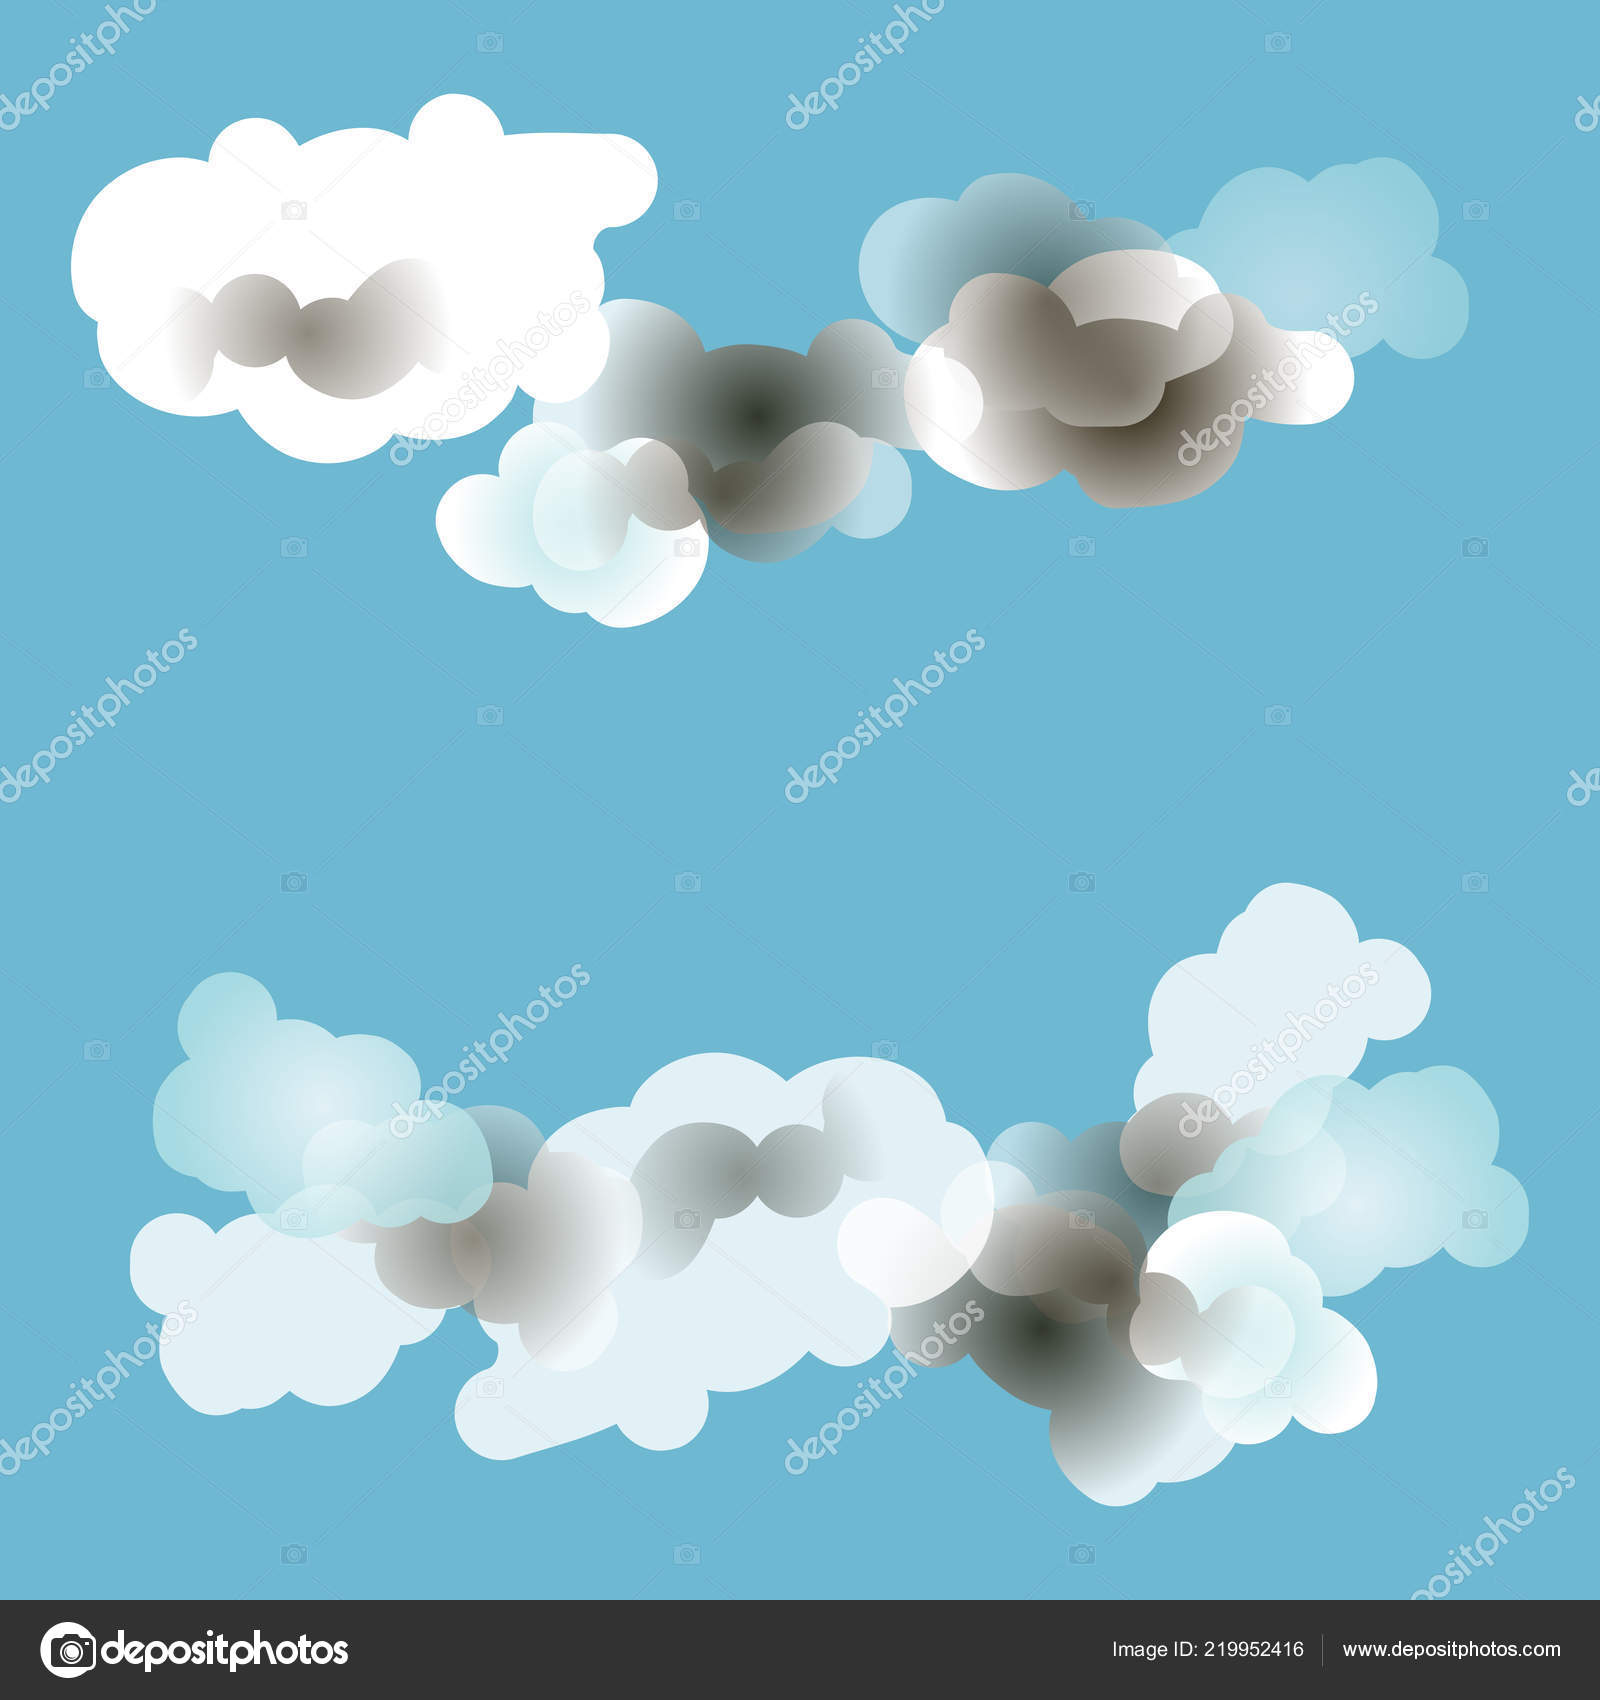 Vector Illustration Clouds Sky Blue Background Place Text Design